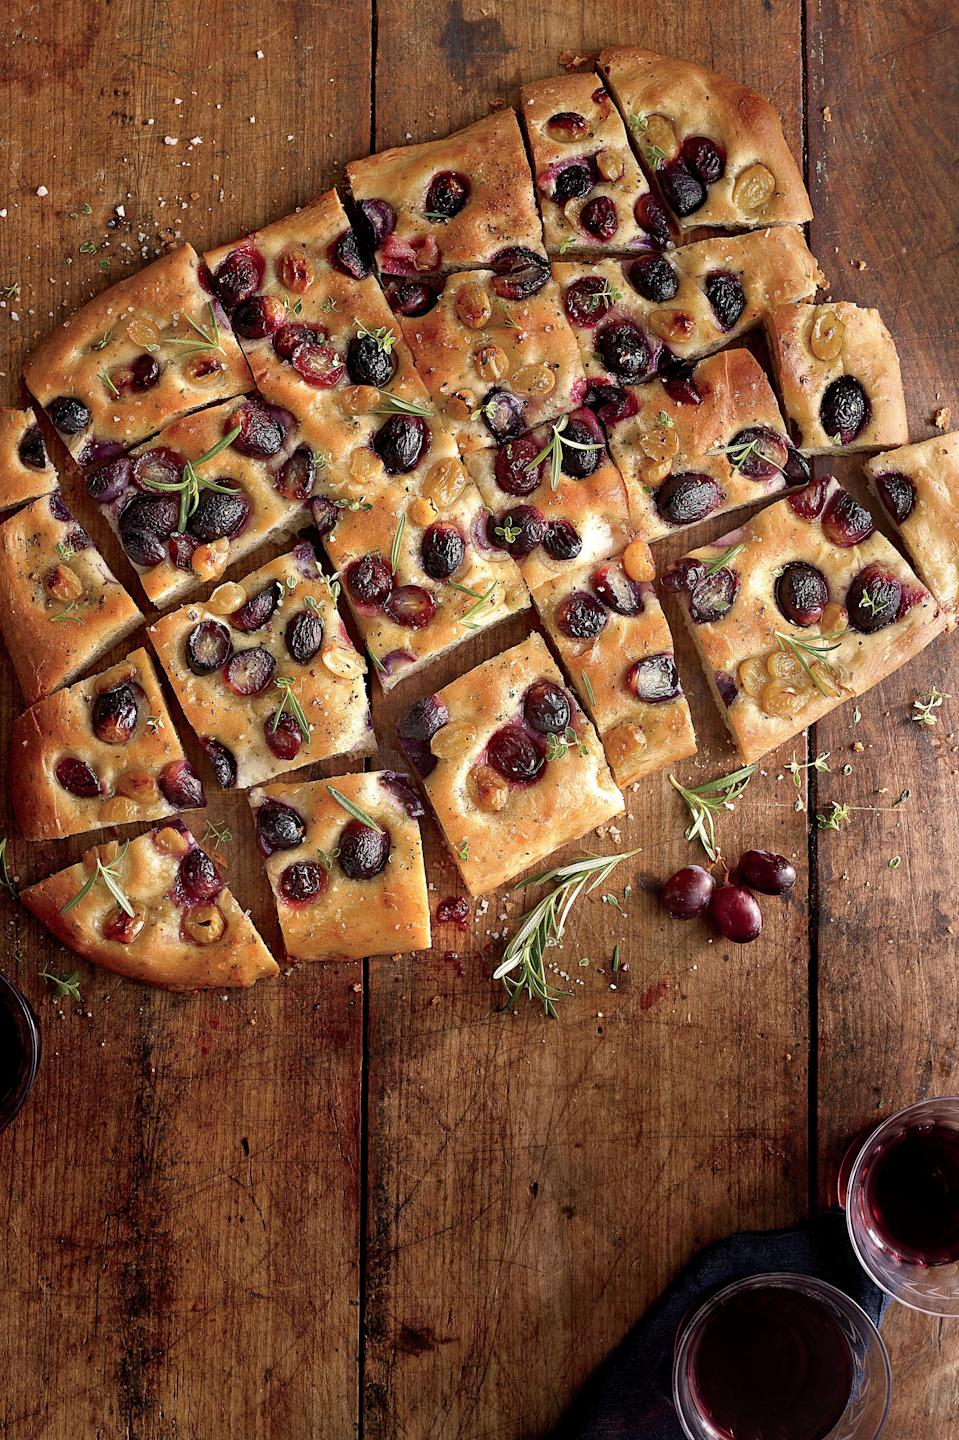 """<p><strong>Recipe: <a href=""""http://www.myrecipes.com/recipe/grape-focaccia-50400000137093/"""" rel=""""nofollow noopener"""" target=""""_blank"""" data-ylk=""""slk:Grape Focaccia"""" class=""""link rapid-noclick-resp"""">Grape Focaccia</a></strong></p> <p>Don't be intimidated by homemade bread; even a beginner can master this simple baking sheet focaccia. It's an effortlessly gorgeous dish for entertaining, and the unexpected combination of sweet and savory flavors will impress. As an appetizer, serve the warm slab of bread, sliced, on a large cutting board with a few wedges of your favorite cheese. Try muscadines or figs in place of the grapes. For leftovers, spread the focaccia with peanut butter for a fresh, sophisticated spin on PB&J.</p>"""